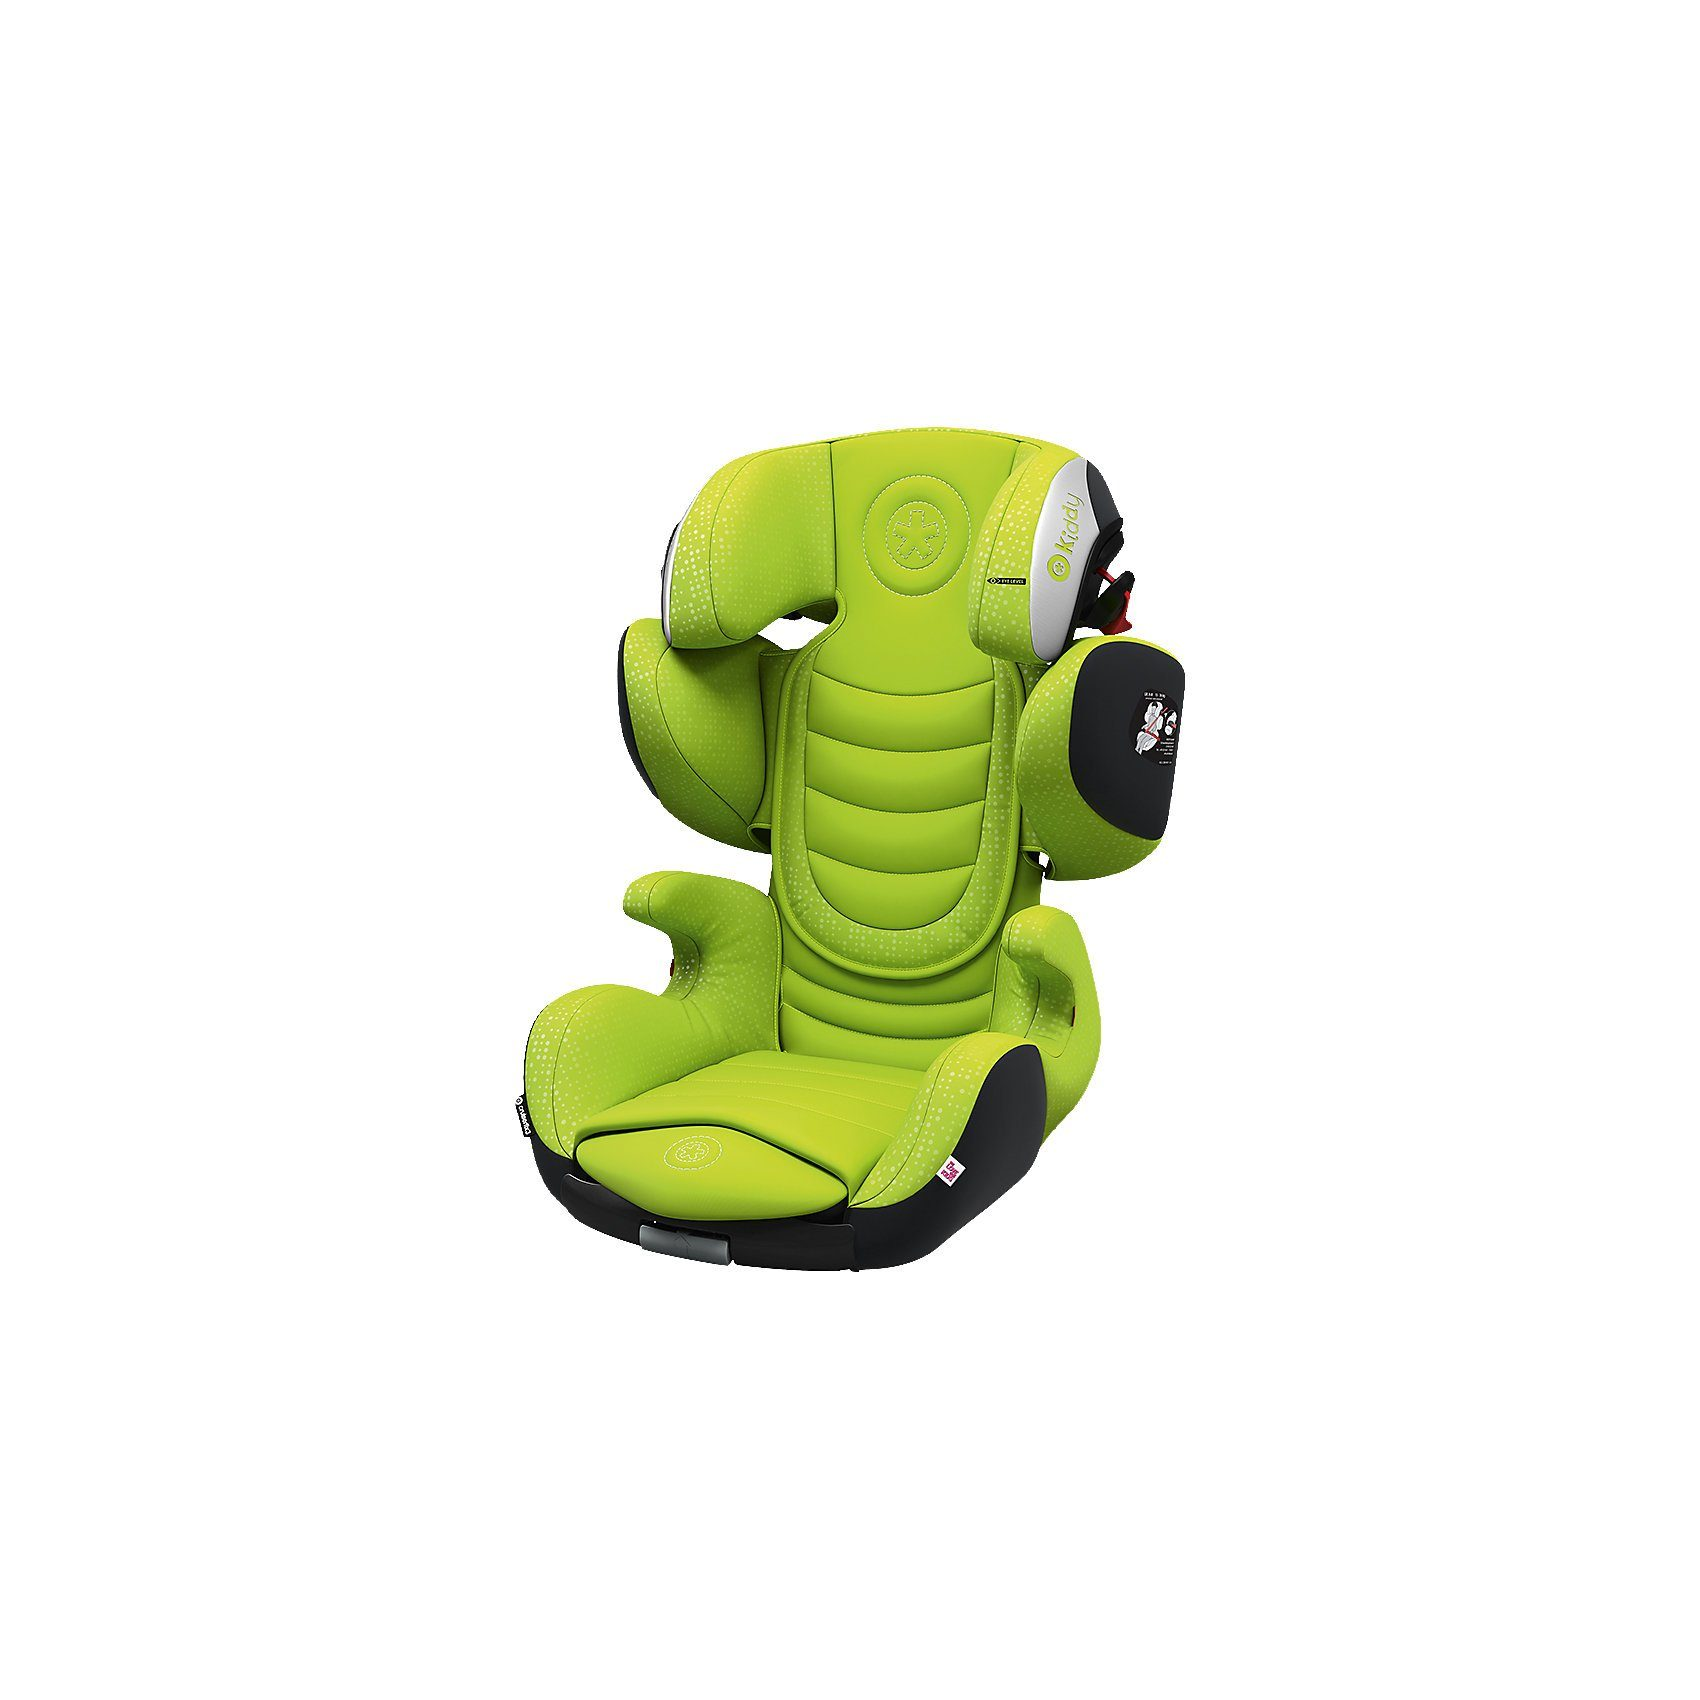 Kiddy Auto-Kindersitz Cruiserfix 3, lime green, 2017